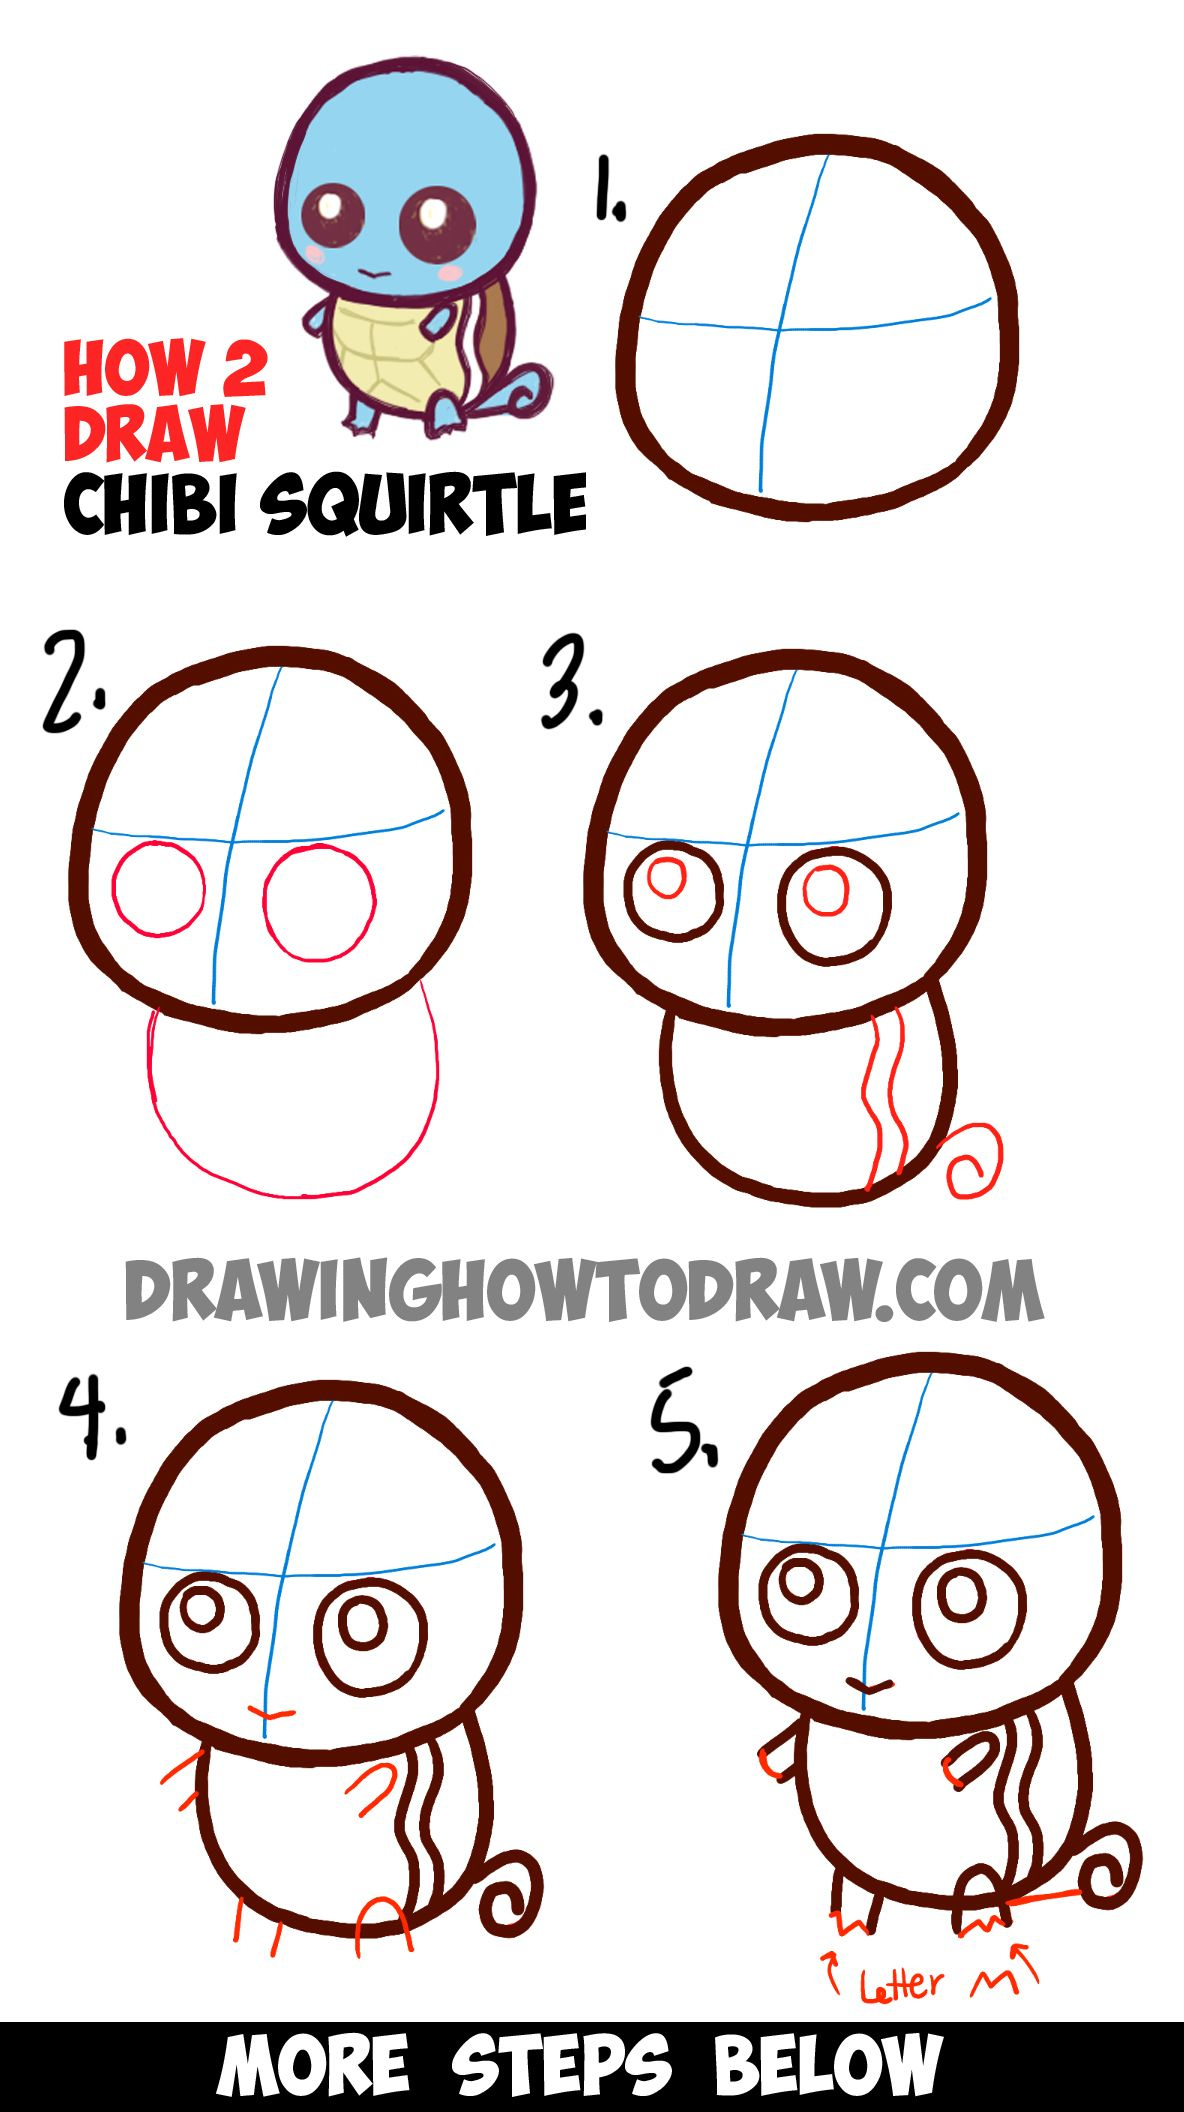 How To Draw Cute Baby Chibi Squirtle From Pokemon Easy Step By Step